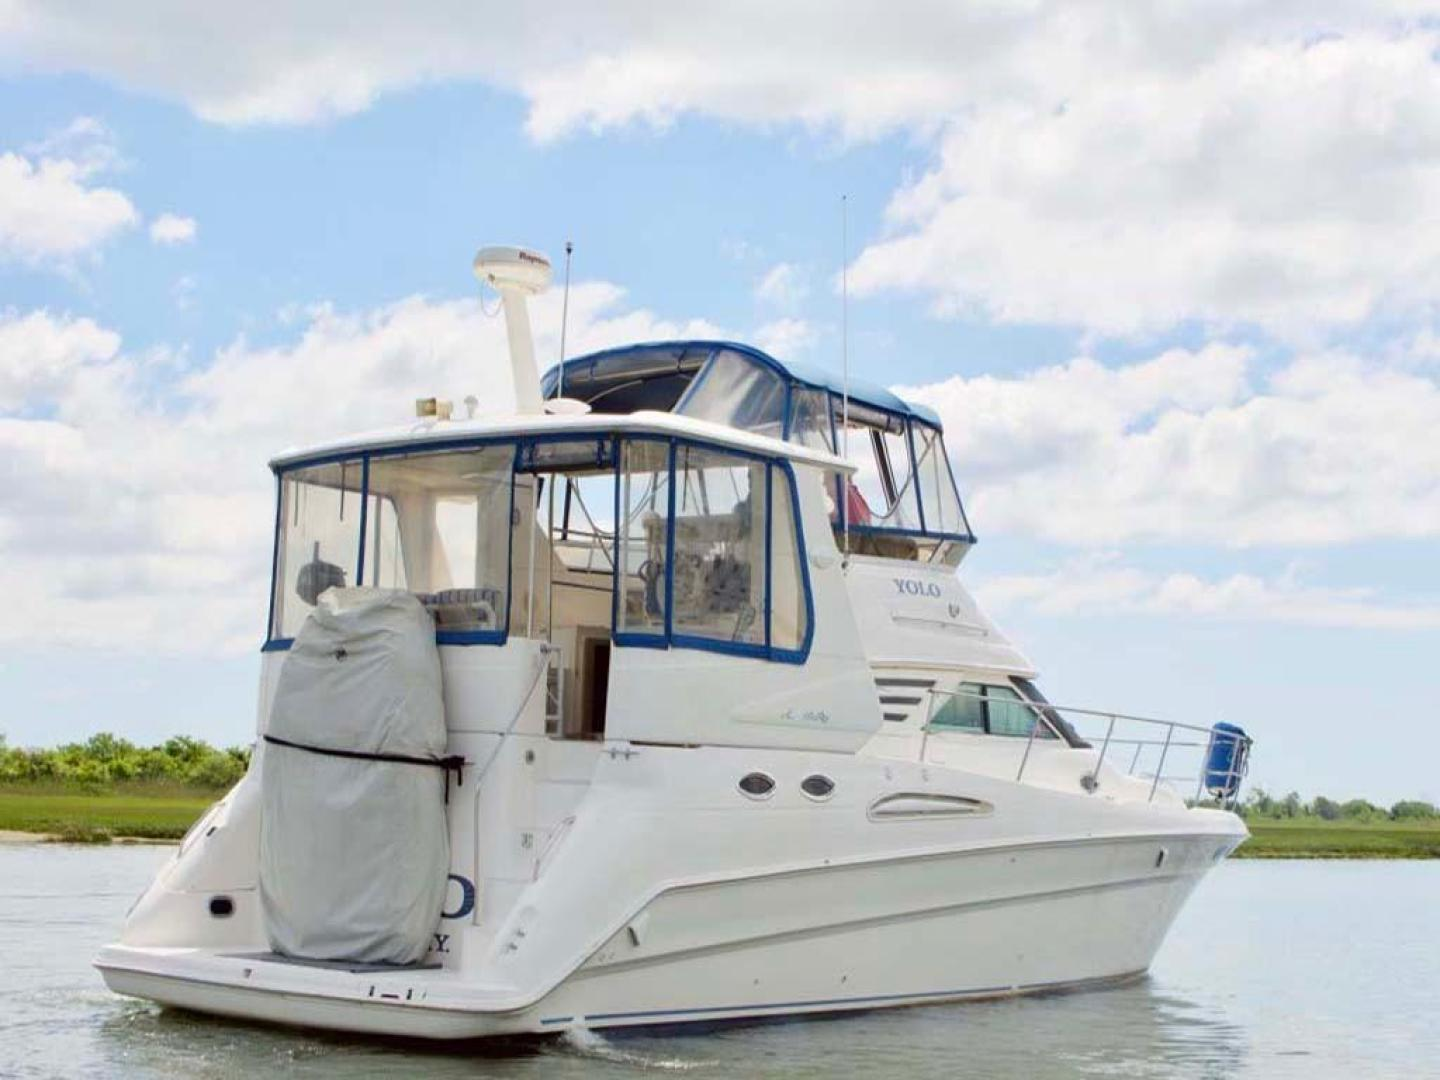 Sea-Ray-420-Aft-Cabin-2000-YOLO-Long-Island-New-York-United-States-Starboard-930311